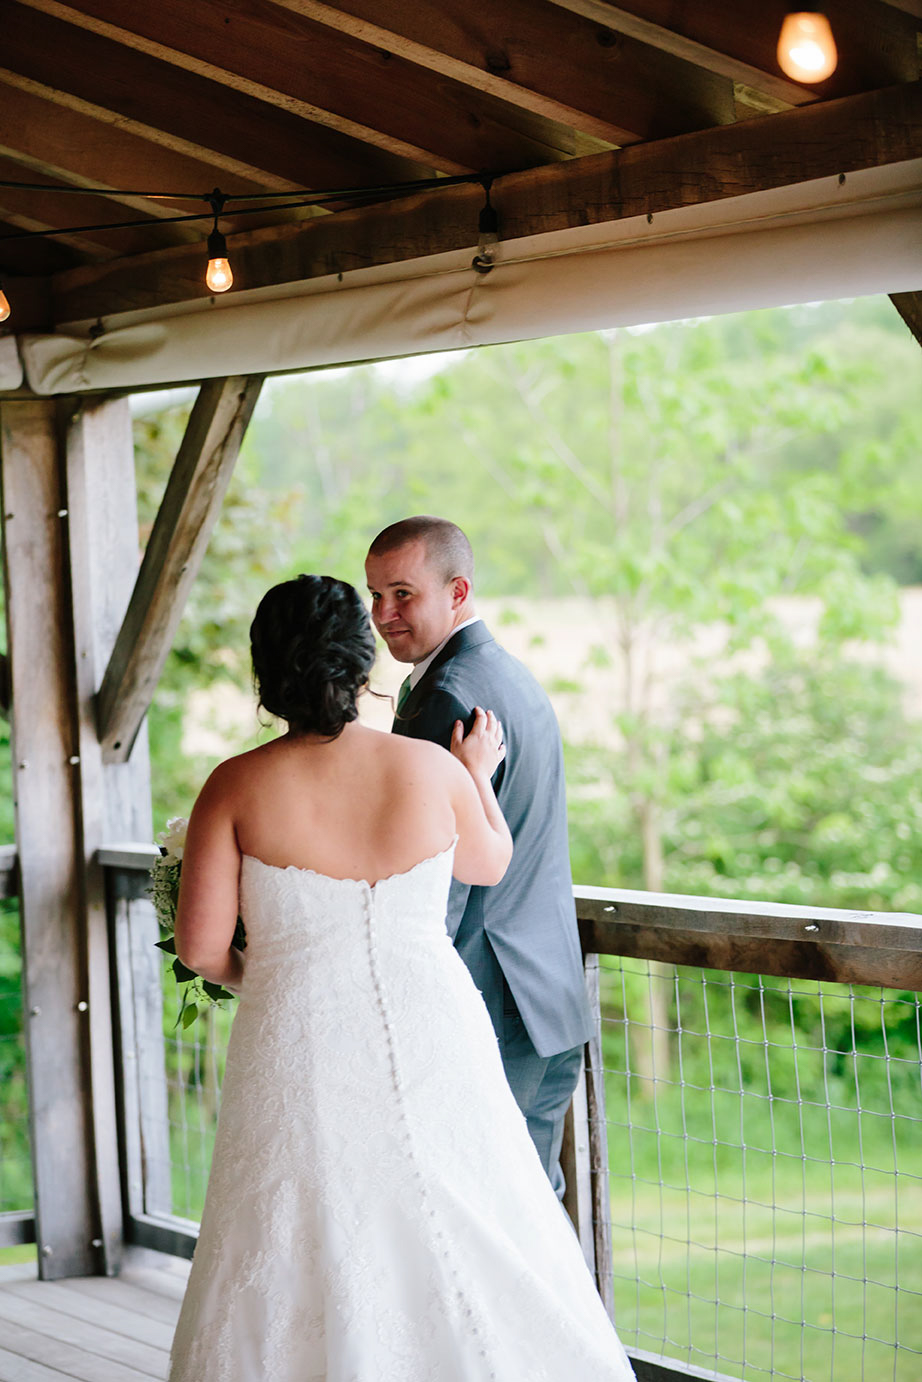 Hidden_Vineyard_Wedding_018.jpg